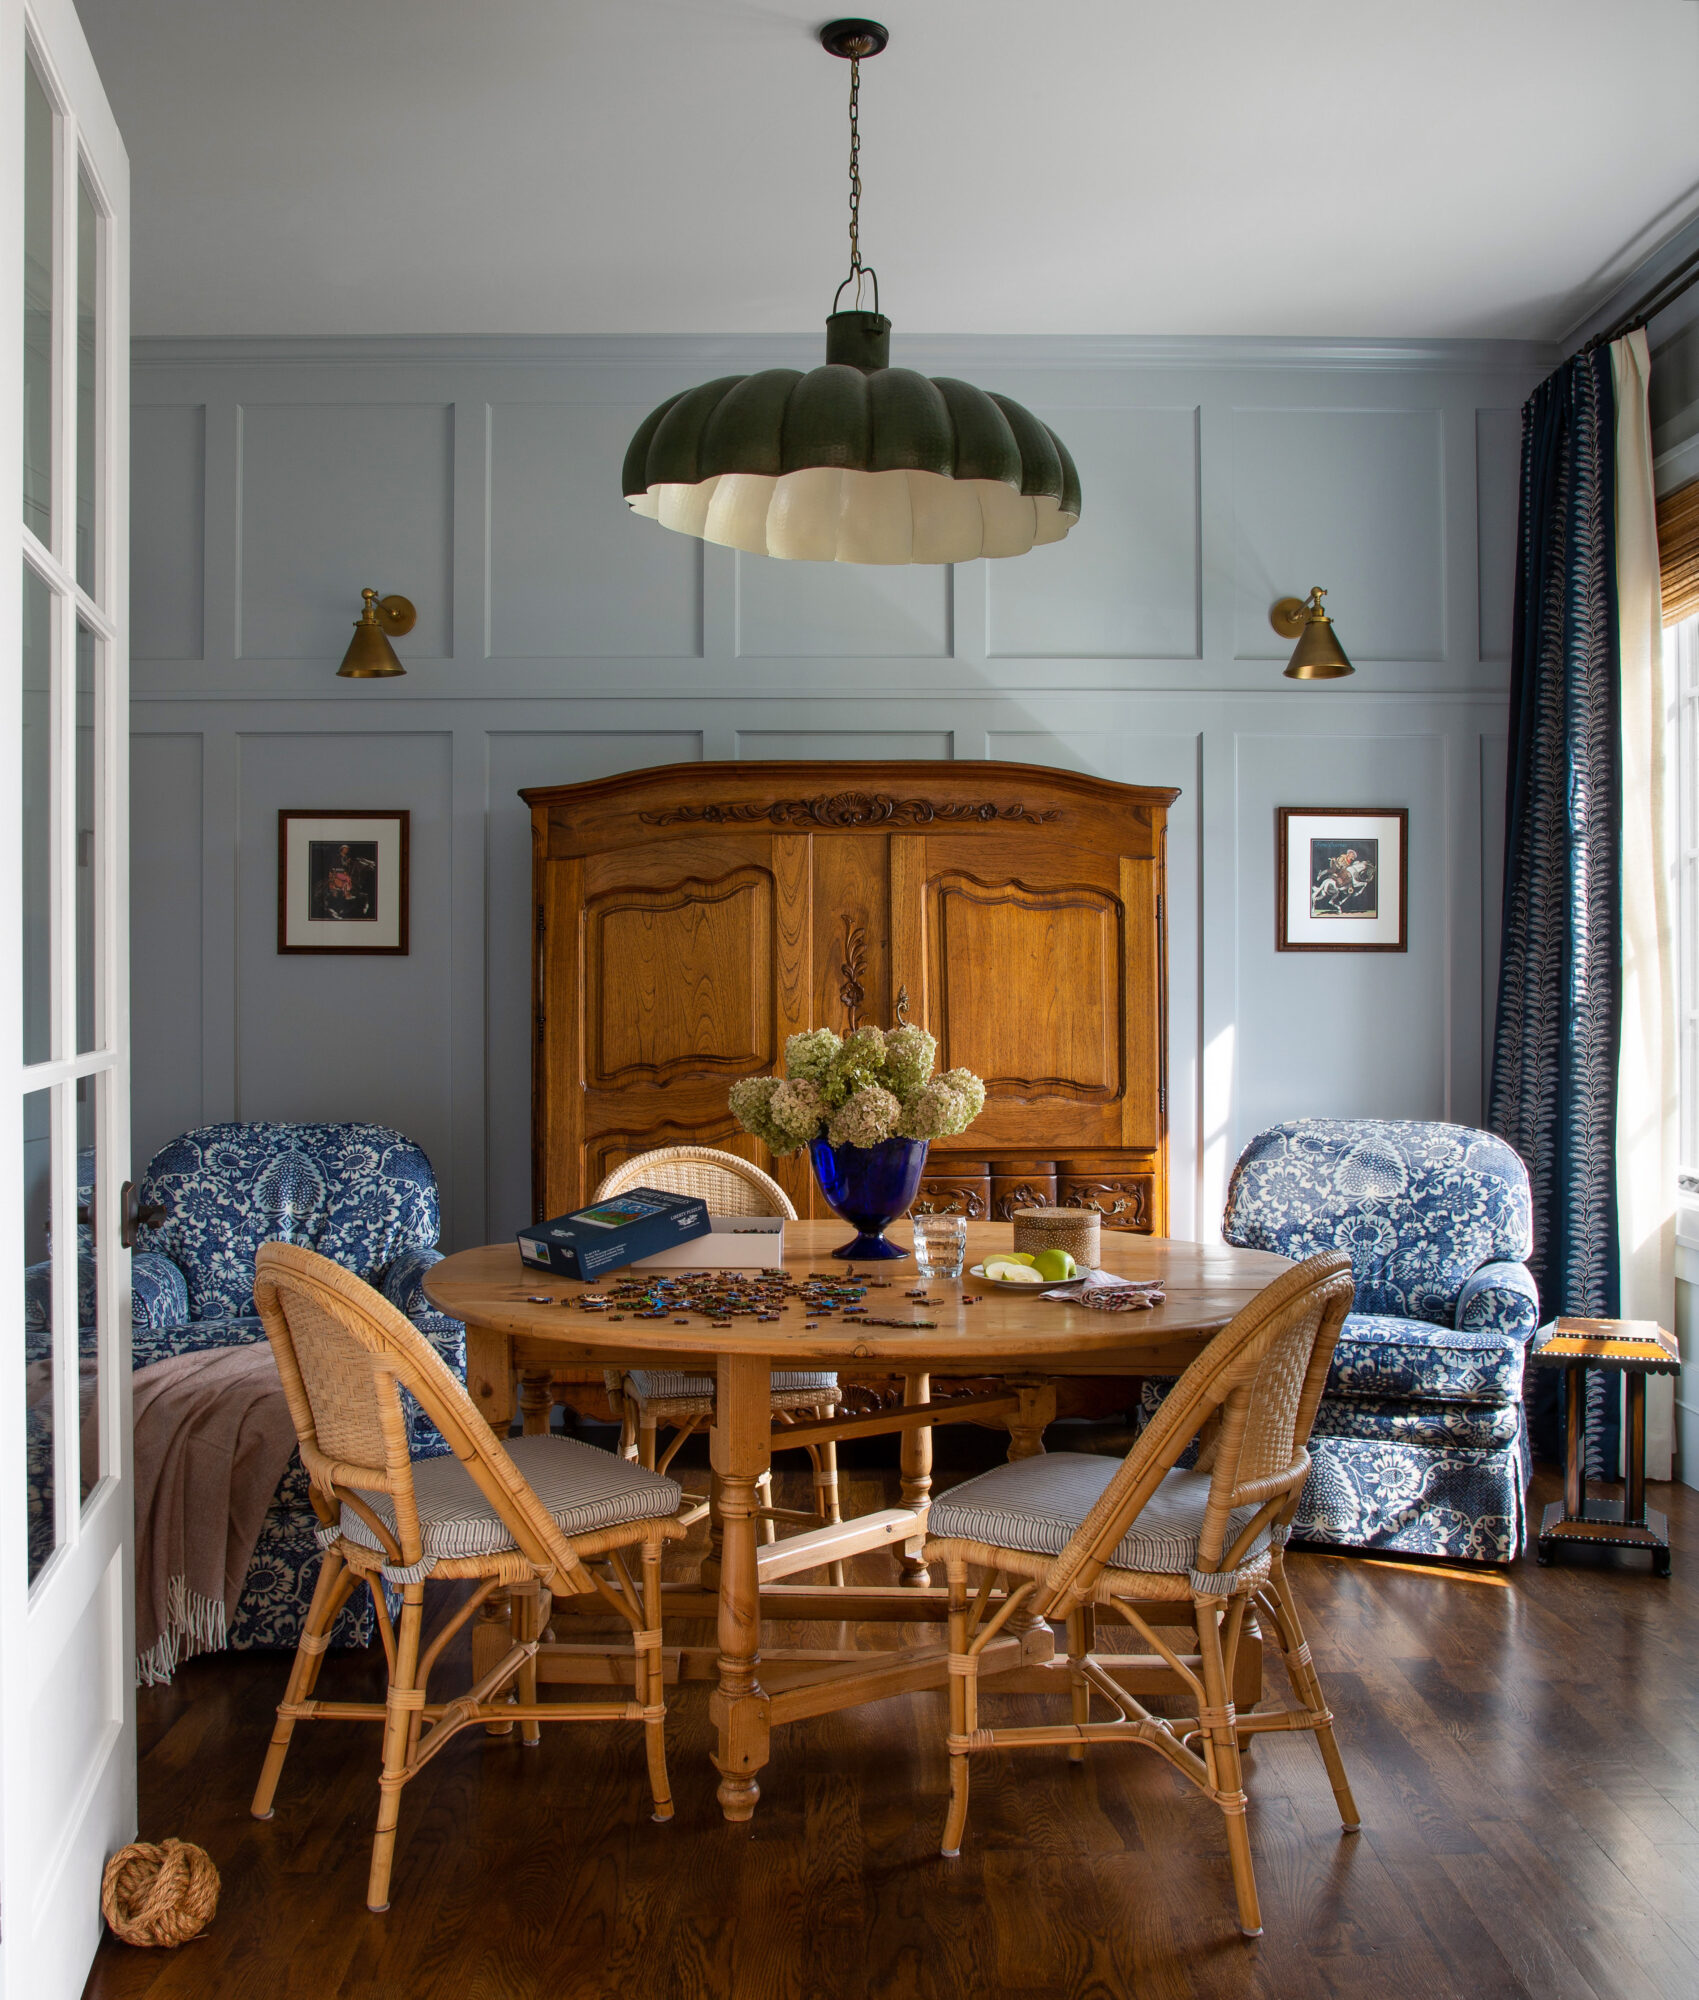 Embrace This Fresh Take On Red, White And Blue In Denver {Embrace This Fresh Take On Red, White And Blue In Denver} – English